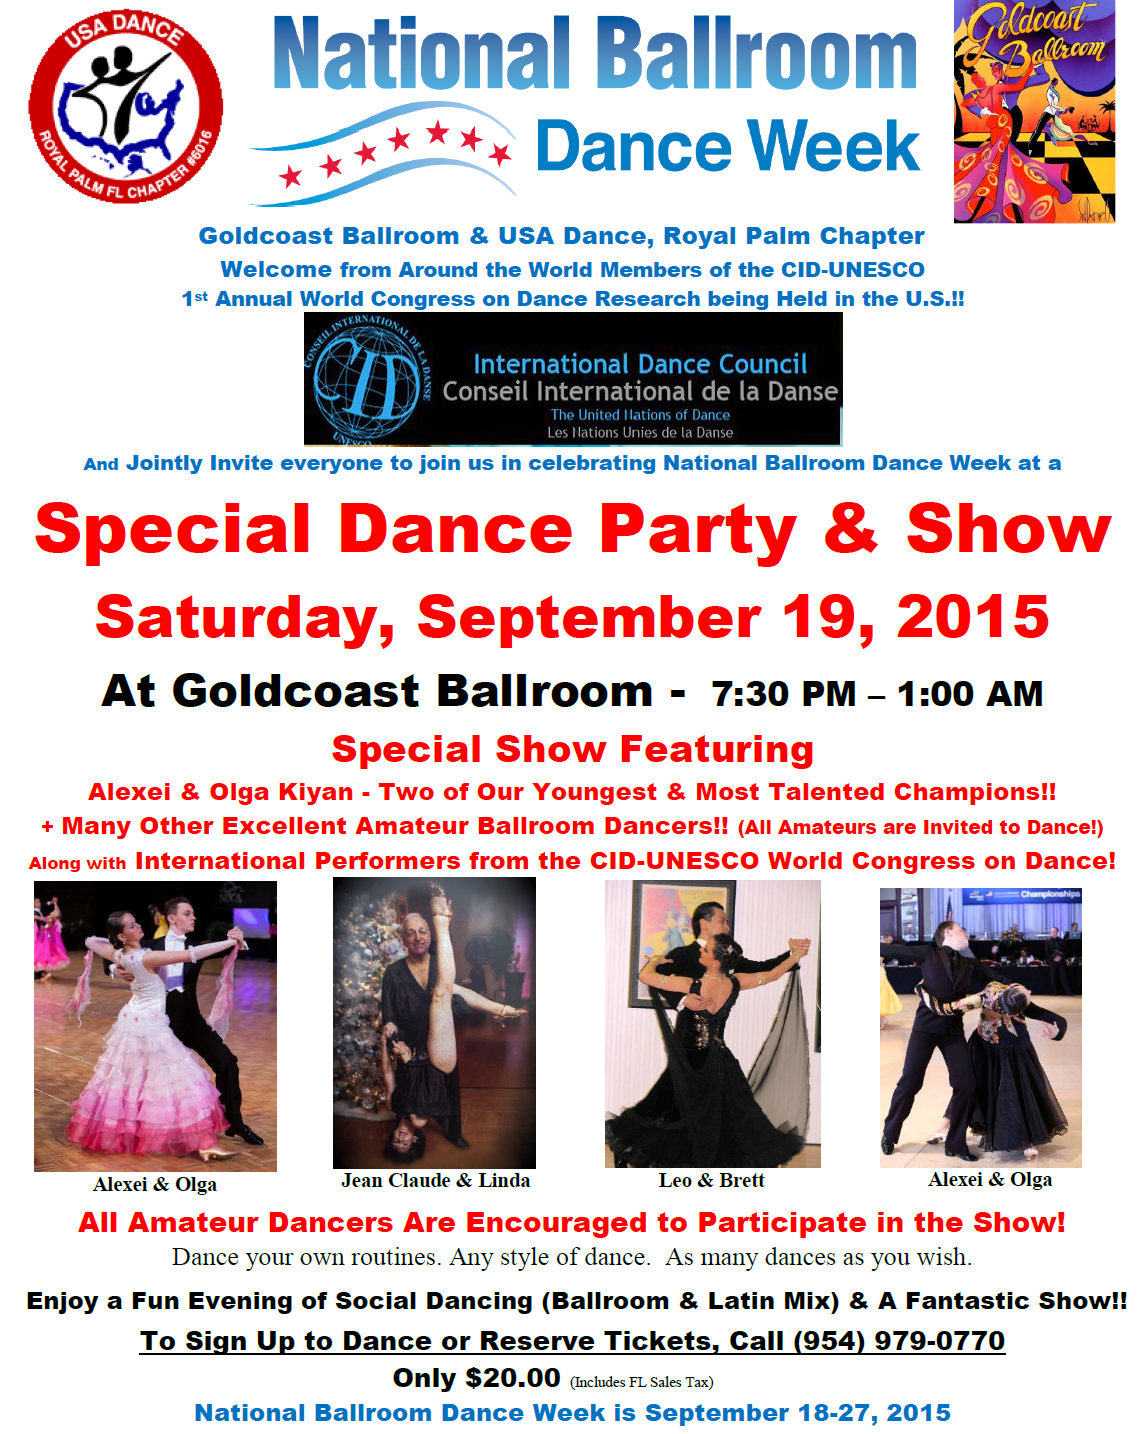 National Ballroom Dance Week Special Party & Show - September 19, 2015